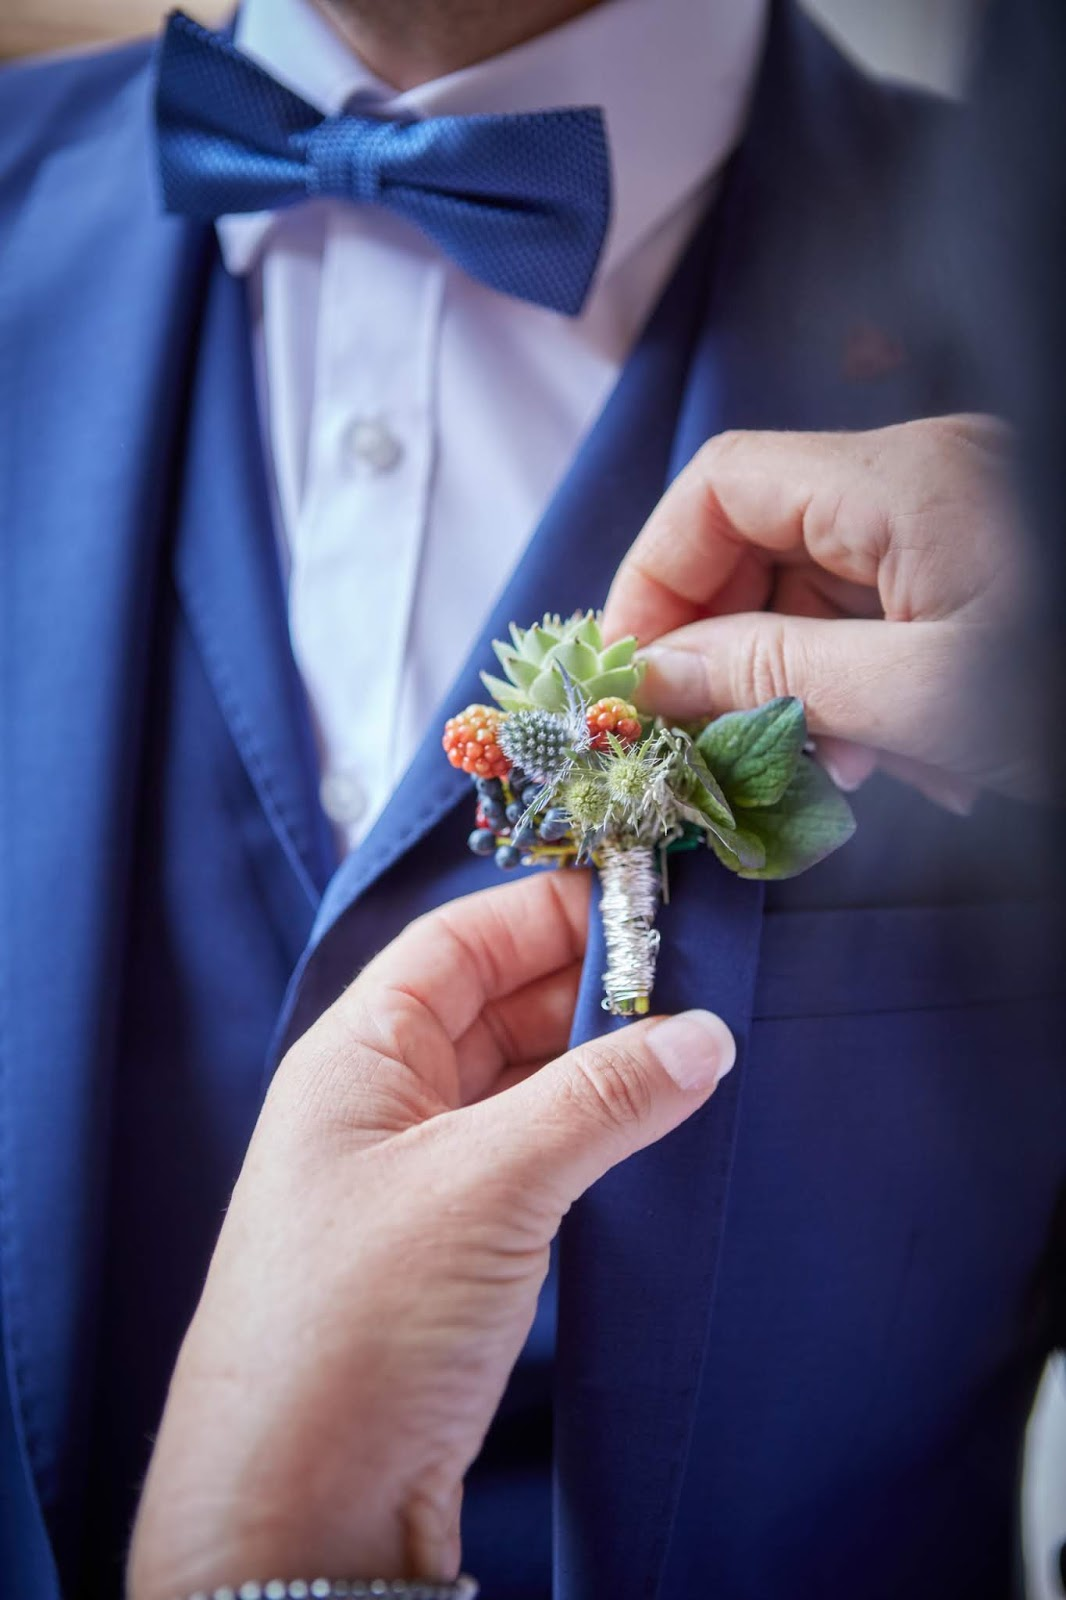 Getting Ready Bräutigam, Corsage Passiflori Blumen Penzberg,  Berghochzeit in Tirol, Mountain wedding, Pure Resort Pitztal, Fotograf Marc Gilsdorf Alpenwedding, Hochzeitsplaneragentur 4 weddings & events, Uschi Glas, Styled Shooting, Destination Wedding Austria